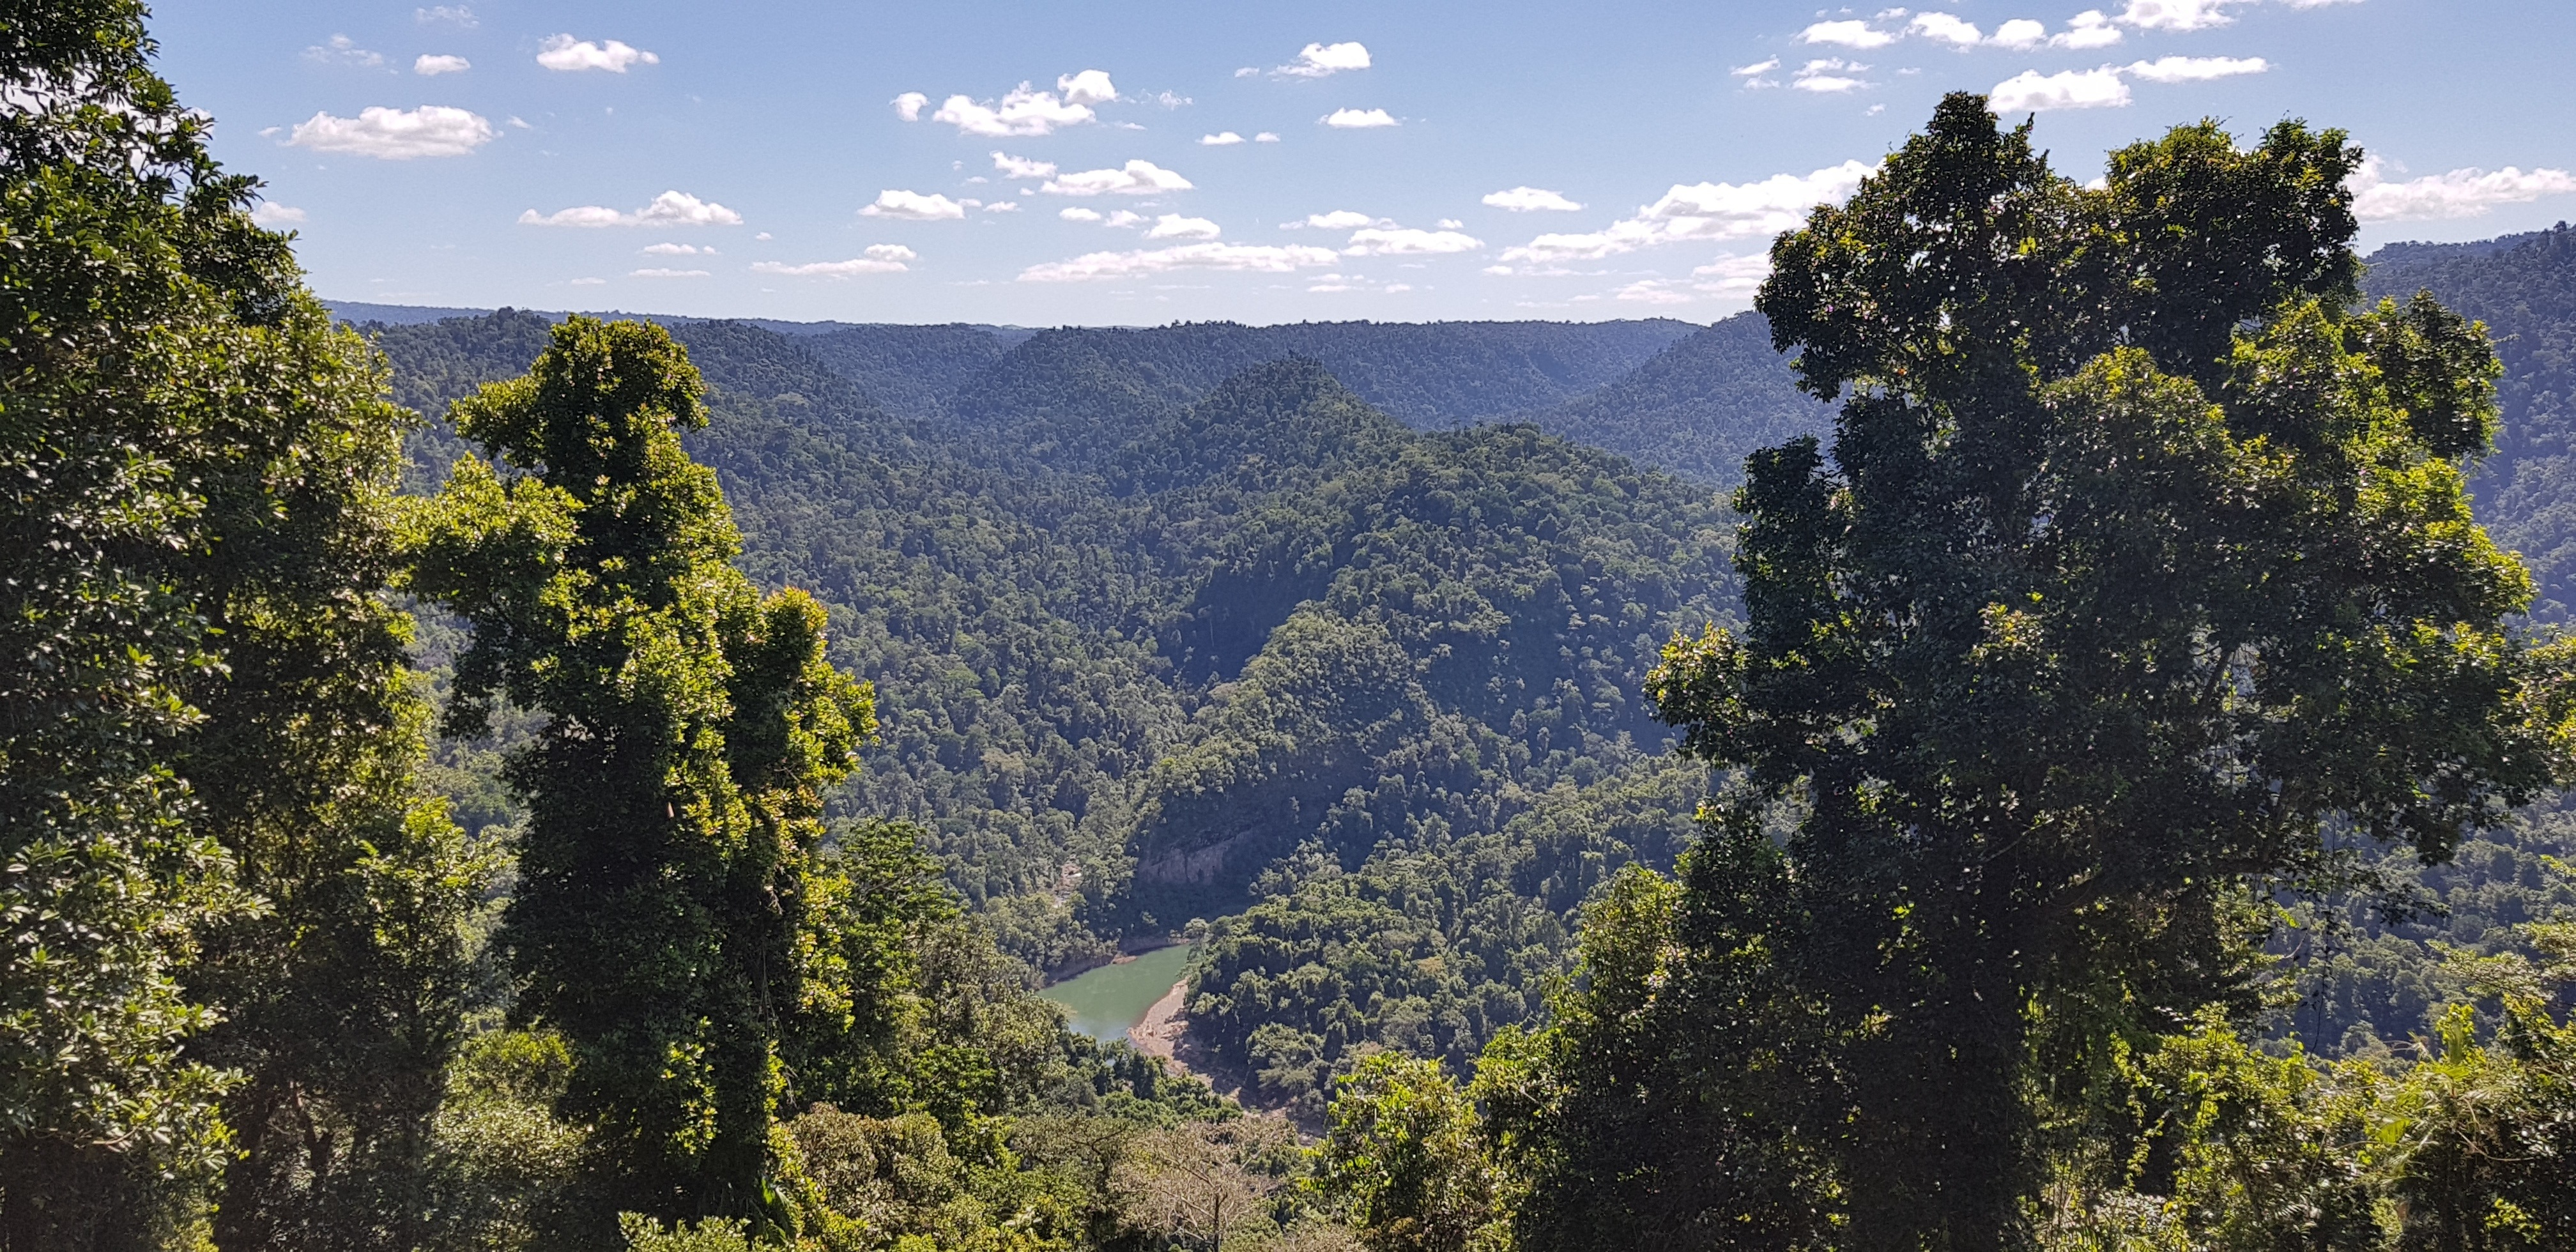 The view from the top of the walking track down to Wallaman falls